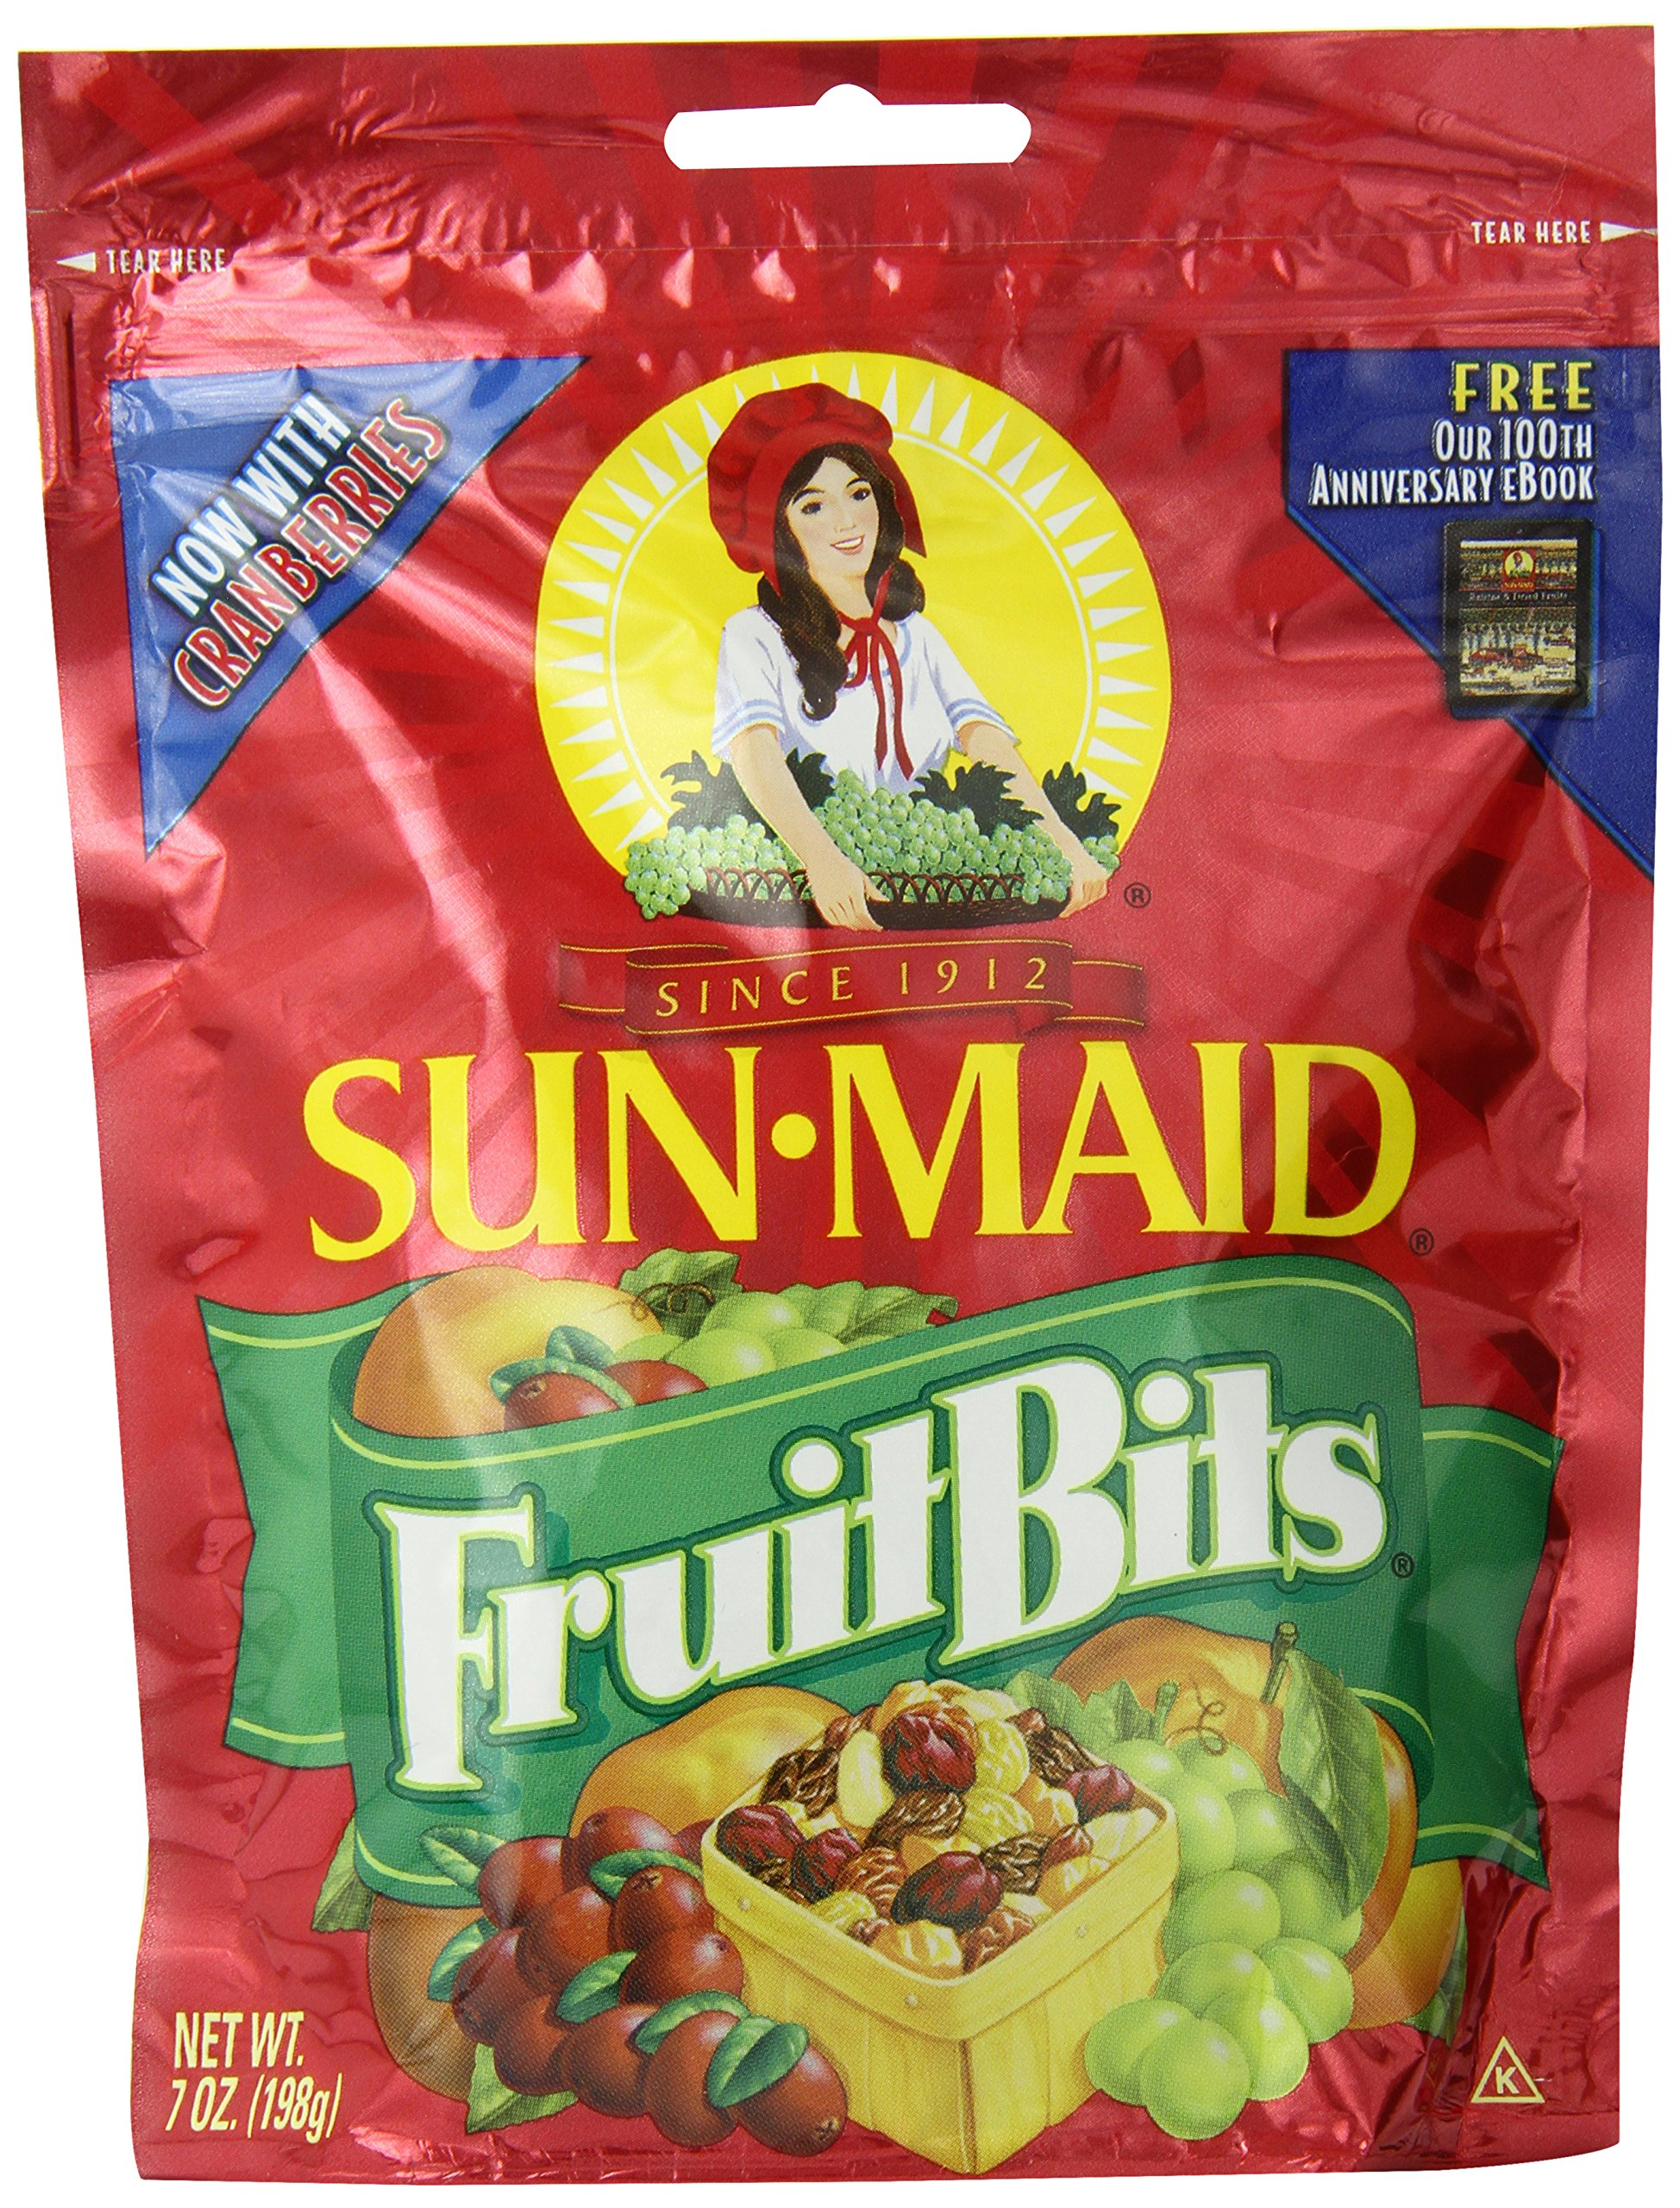 Sun Maid Fruit Bits, 7-Ounce Bags (Pack of 6) by Sun Maid (Image #1)